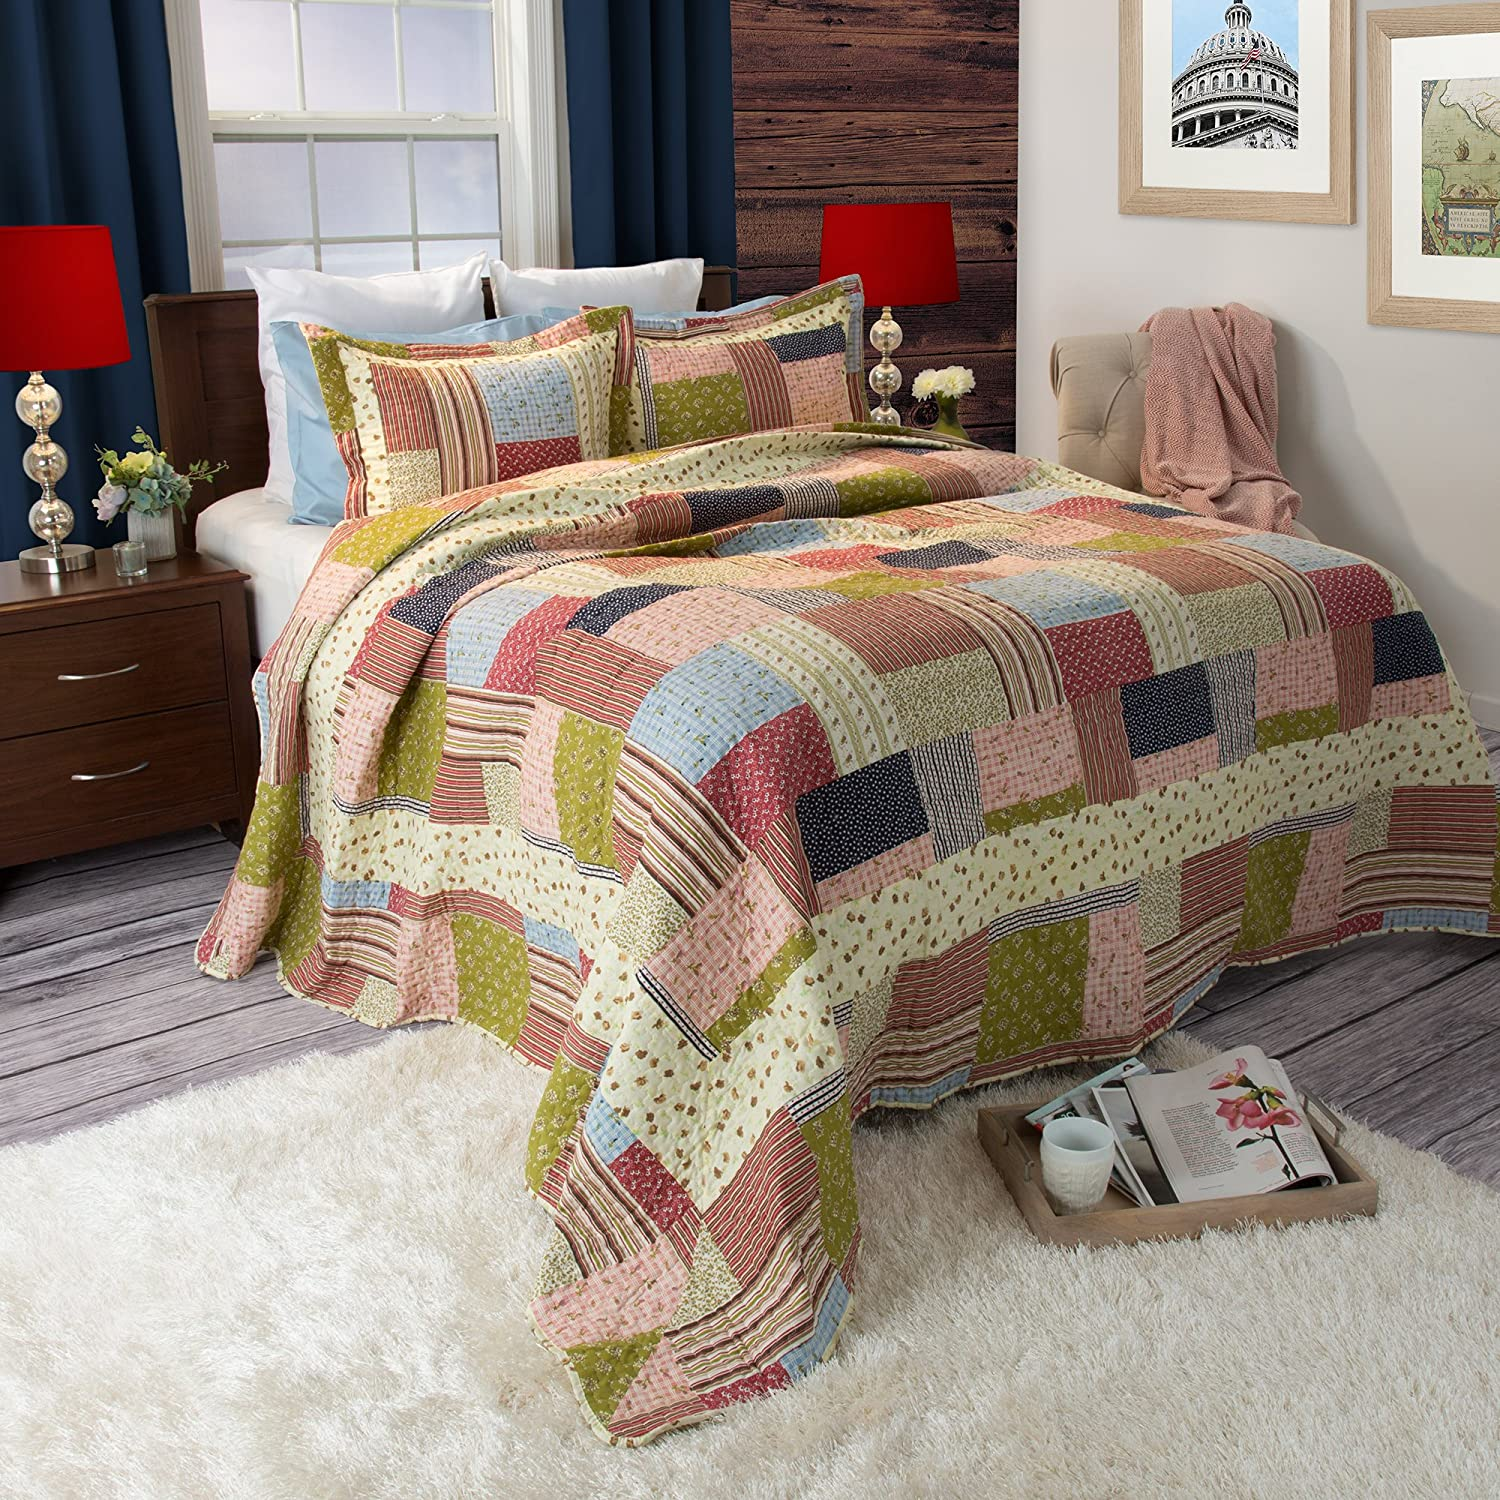 Lavish Home Savannah Printed 2-Piece Quilt Set, Twin